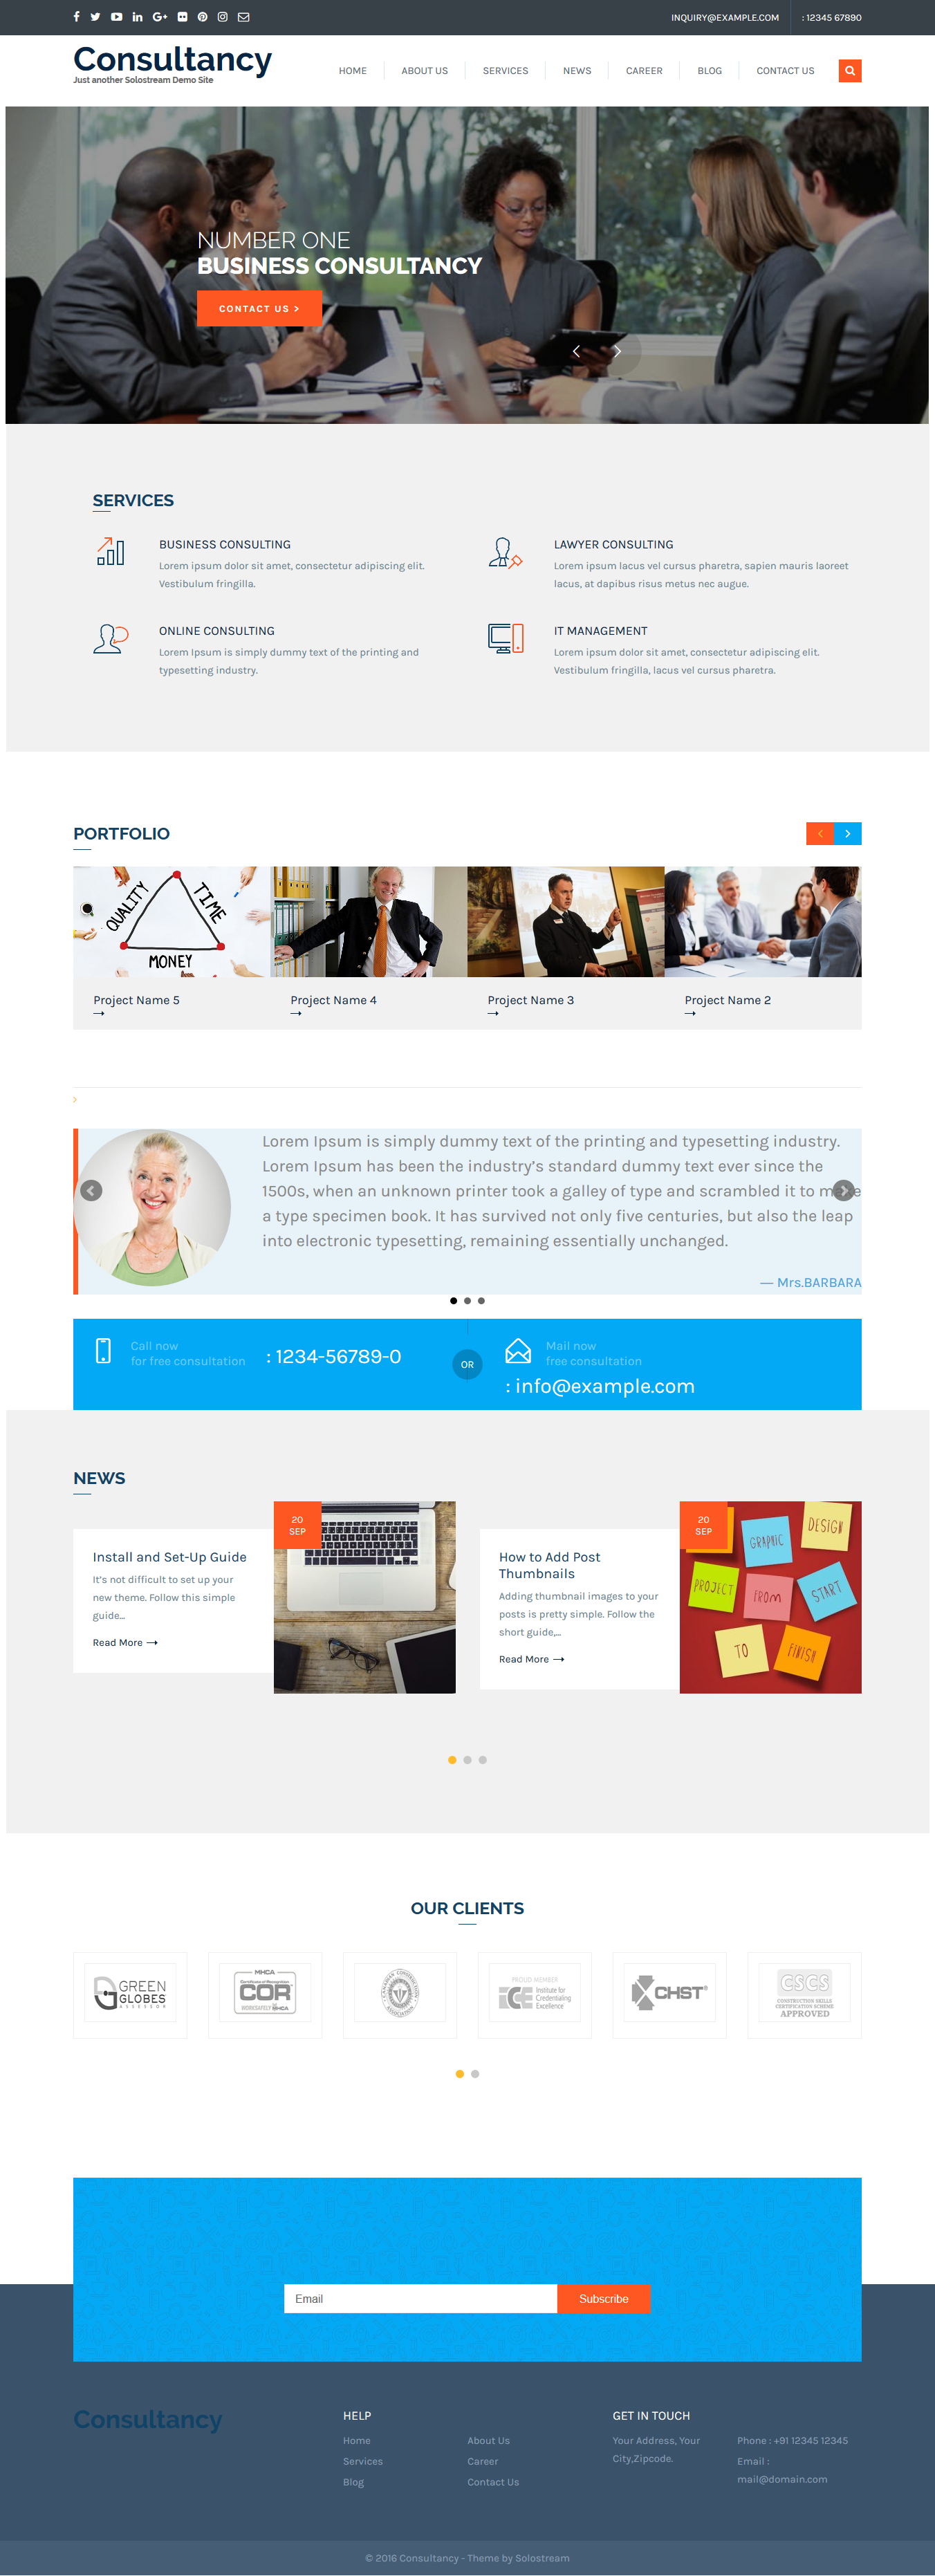 wp-consultancy theme